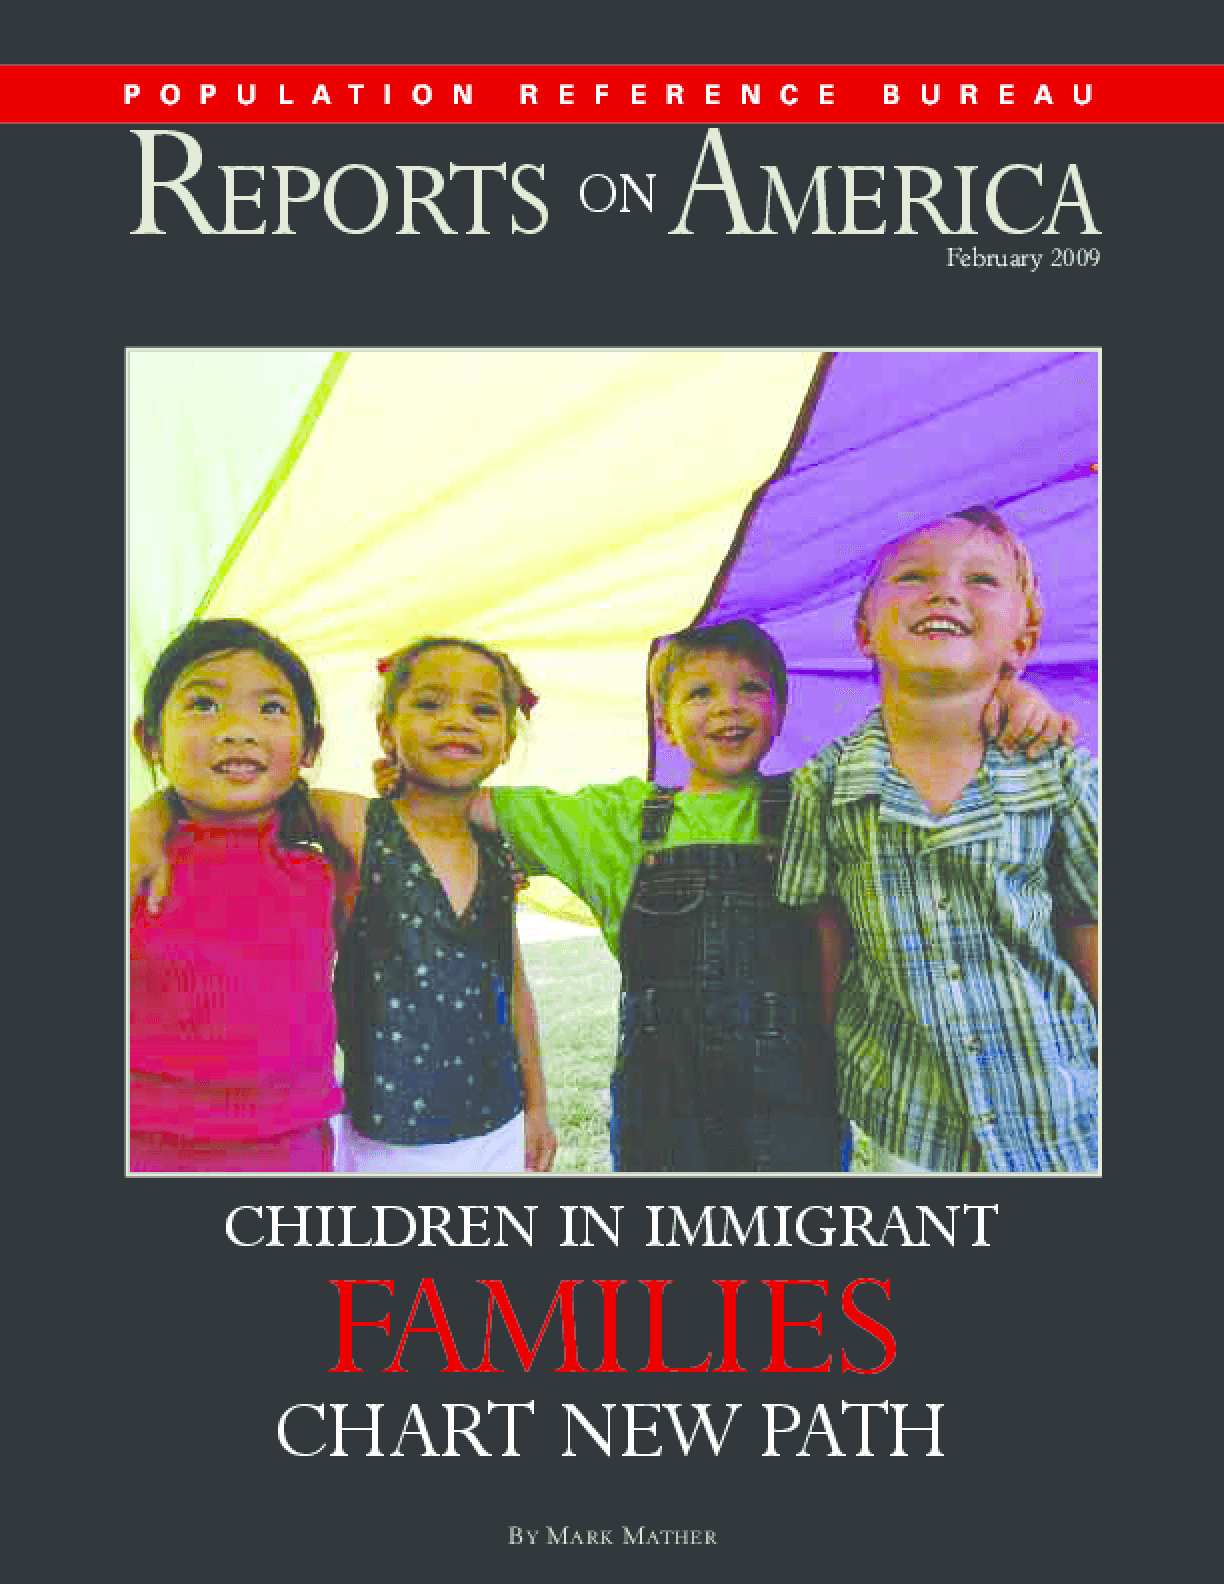 Children in Immigrant Families Chart New Path